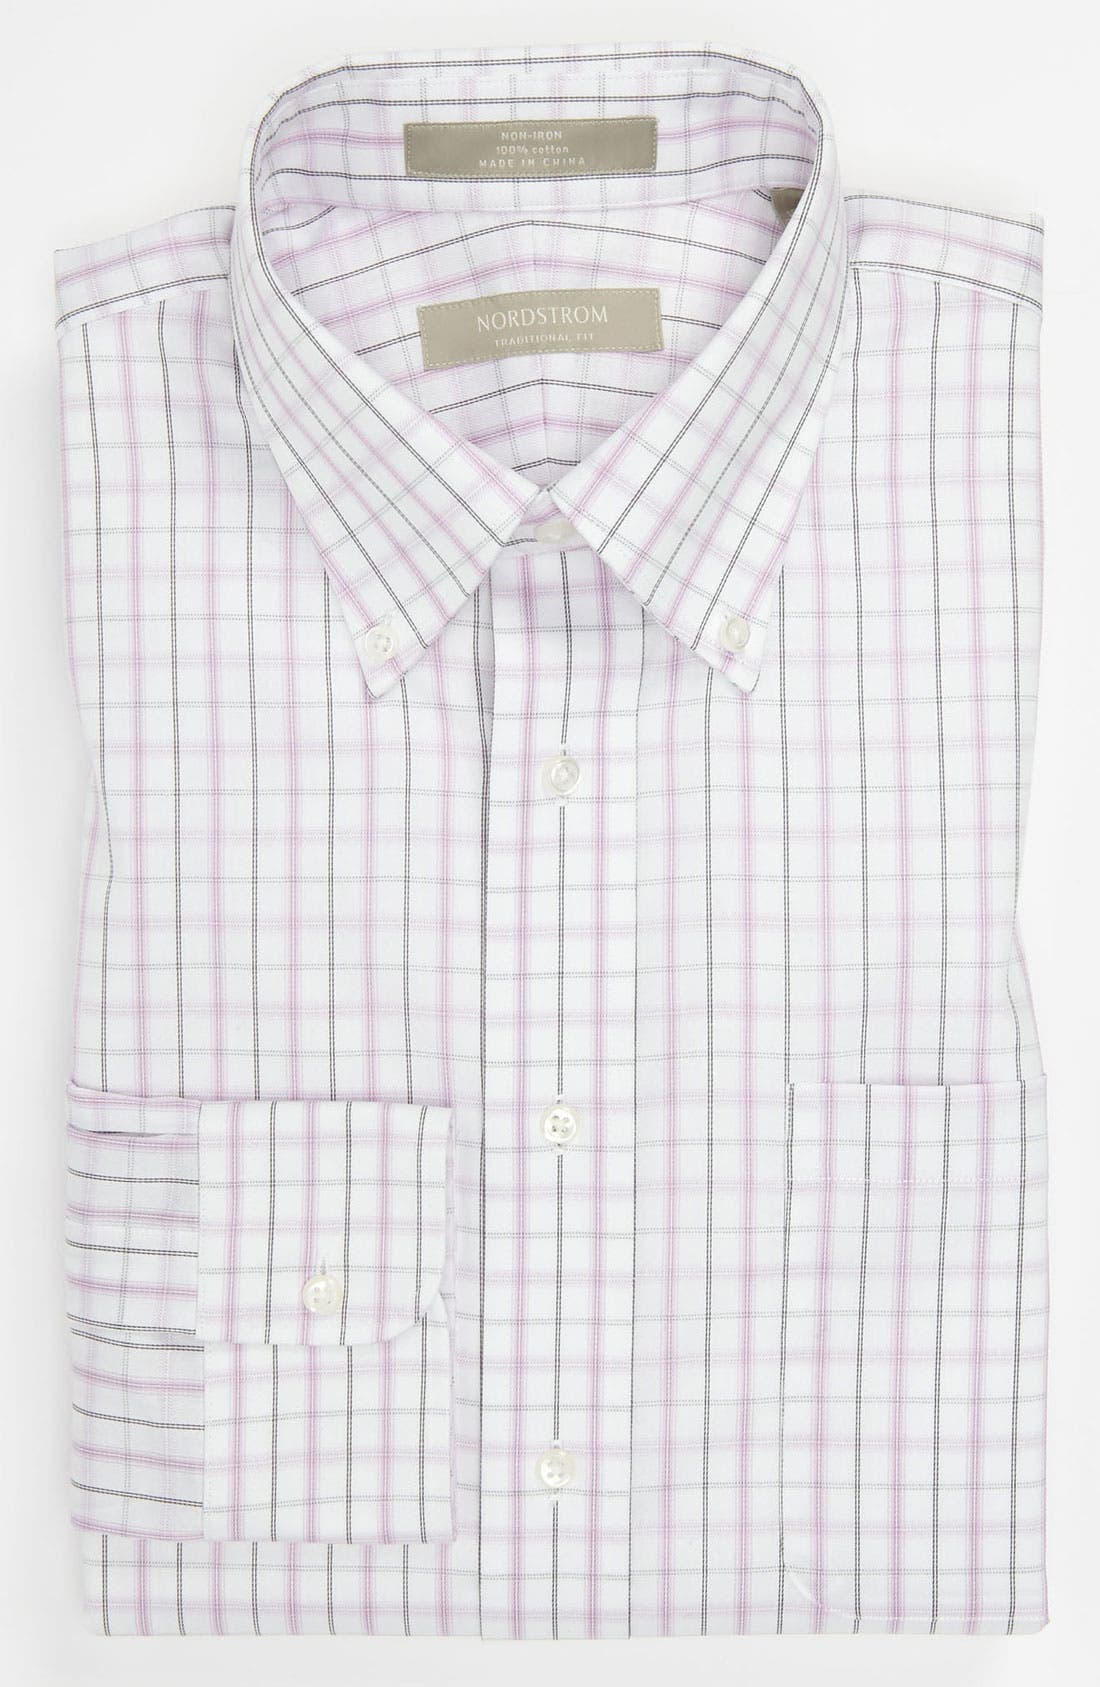 Alternate Image 1 Selected - Nordstrom Non-Iron Traditional Fit Dress Shirt (Online Only)